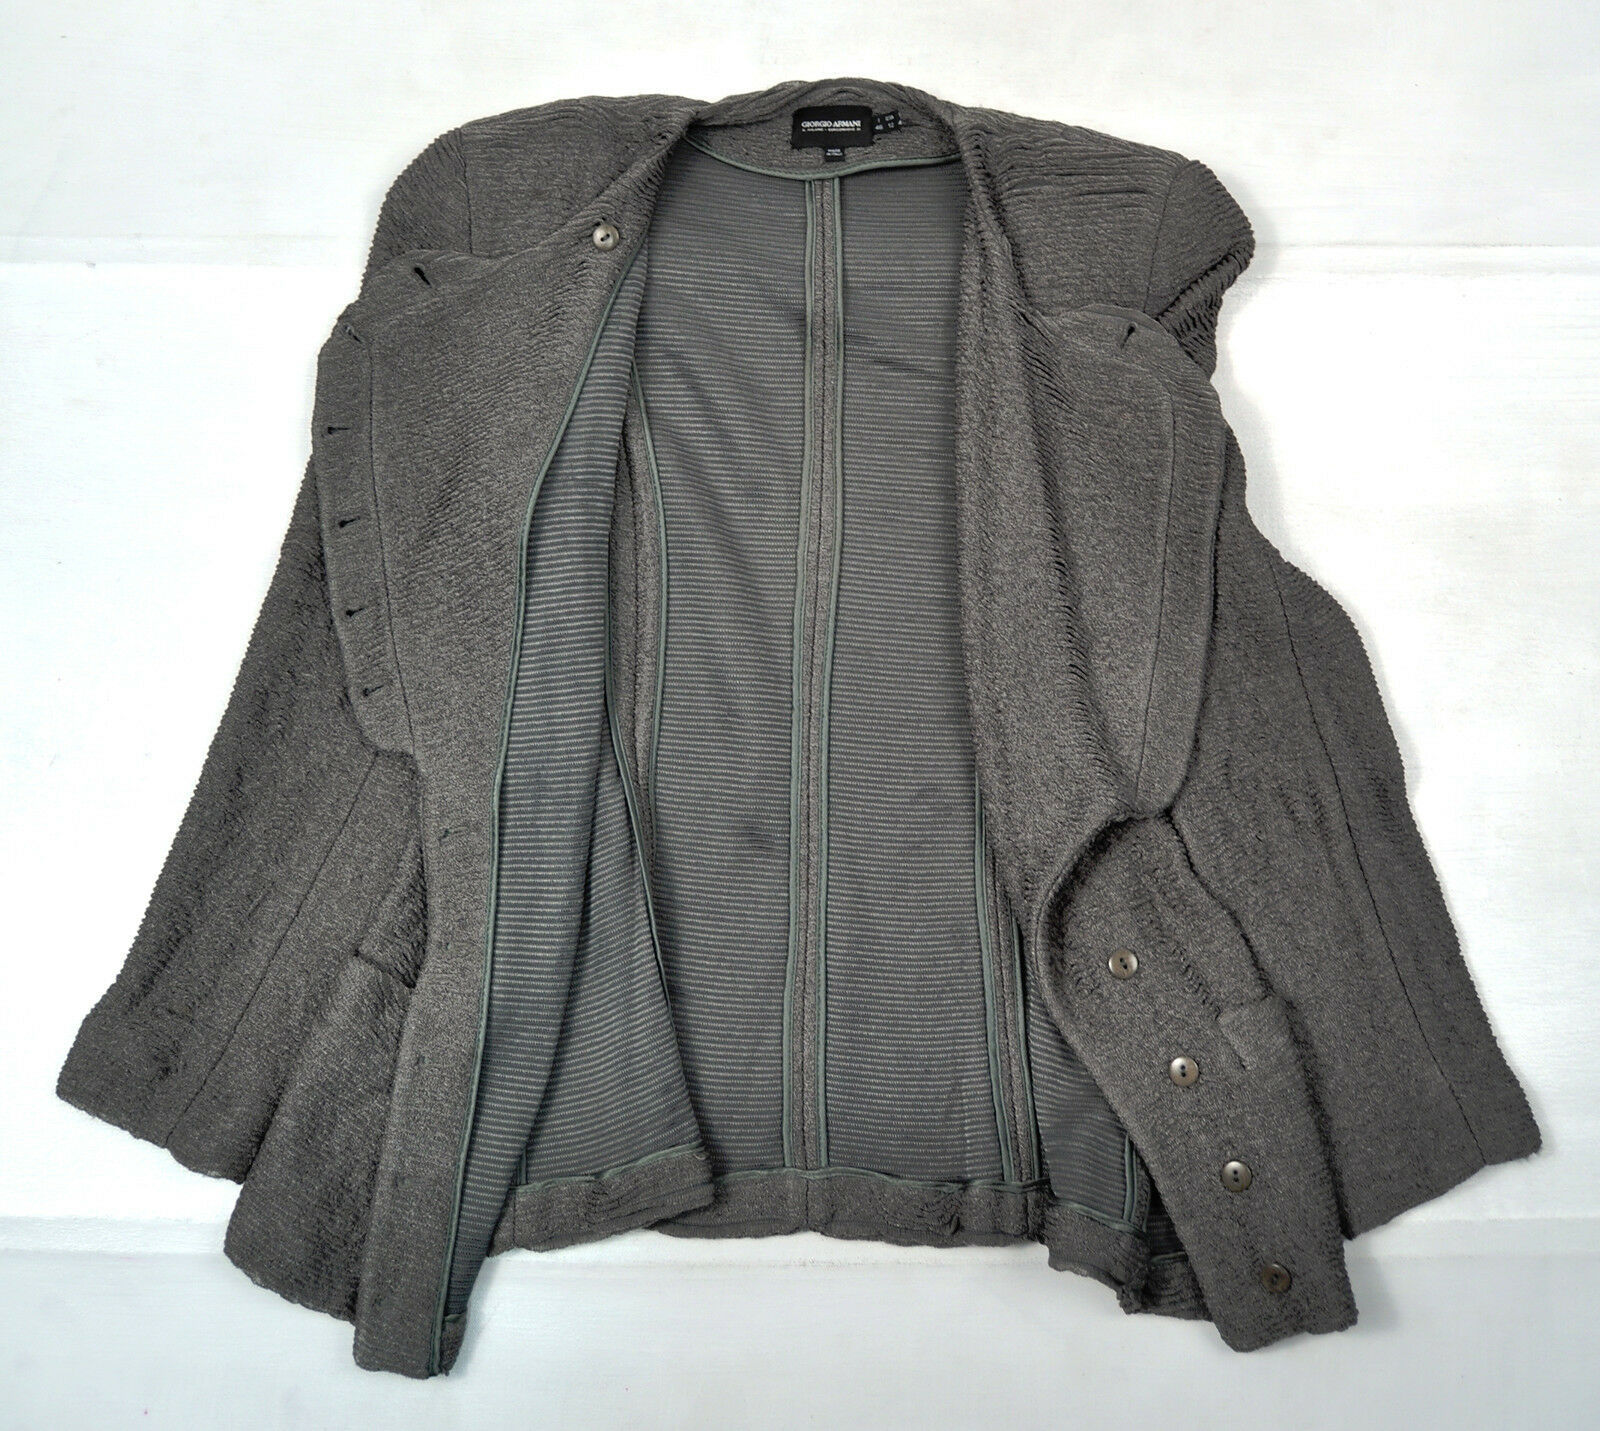 Giorgio Armani Black Label Green Ruffled Jacket Womens 46 12 Italy